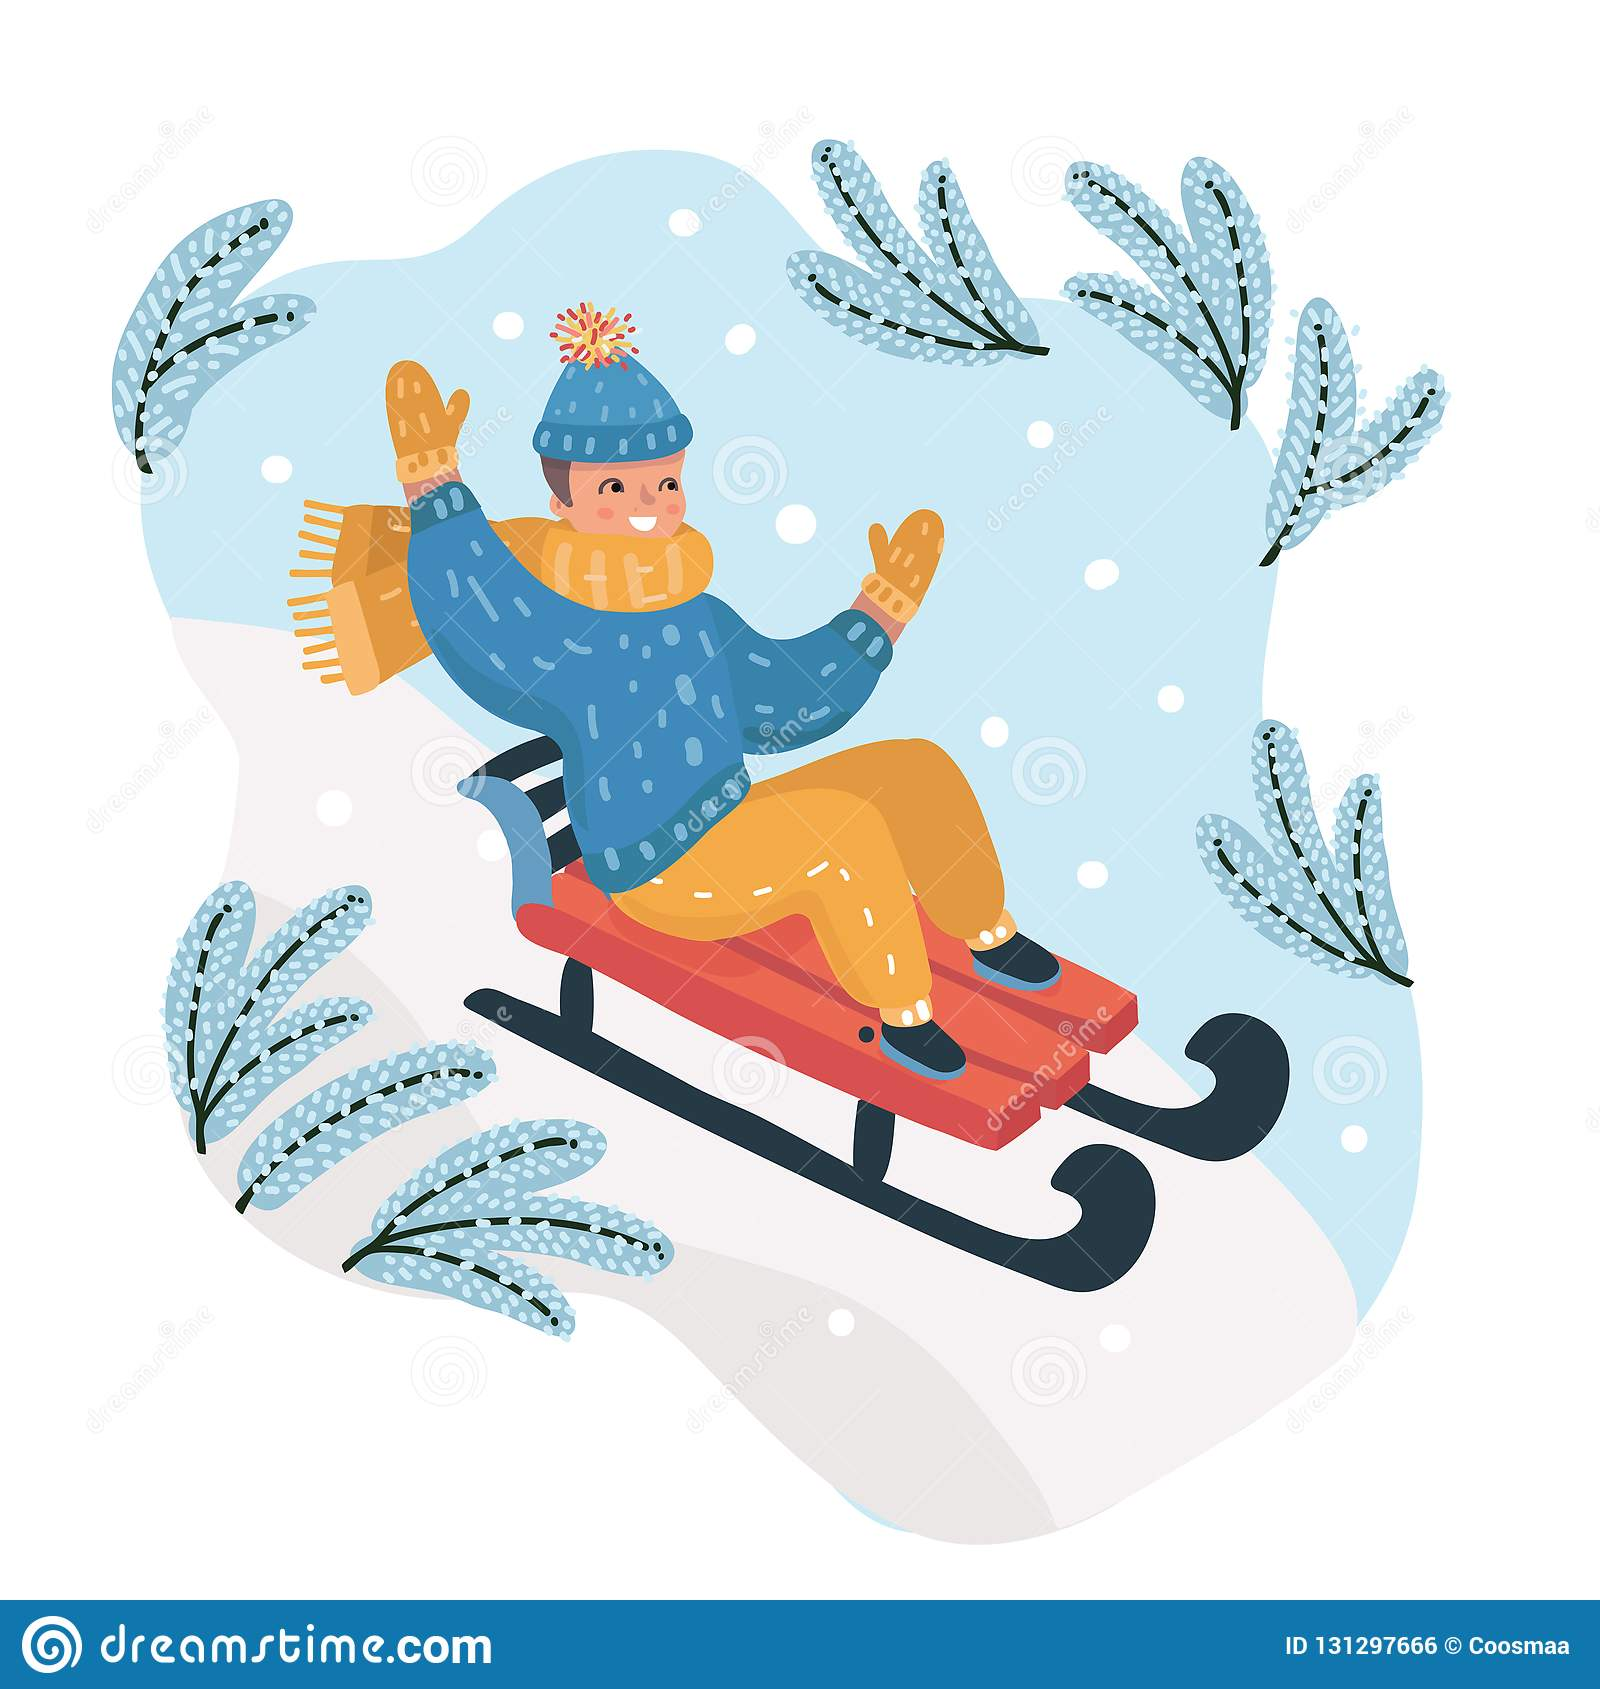 Happy Boy Sledding Down The Hill On The Snow Stock Vector Illustration Of Merry Color 131297666